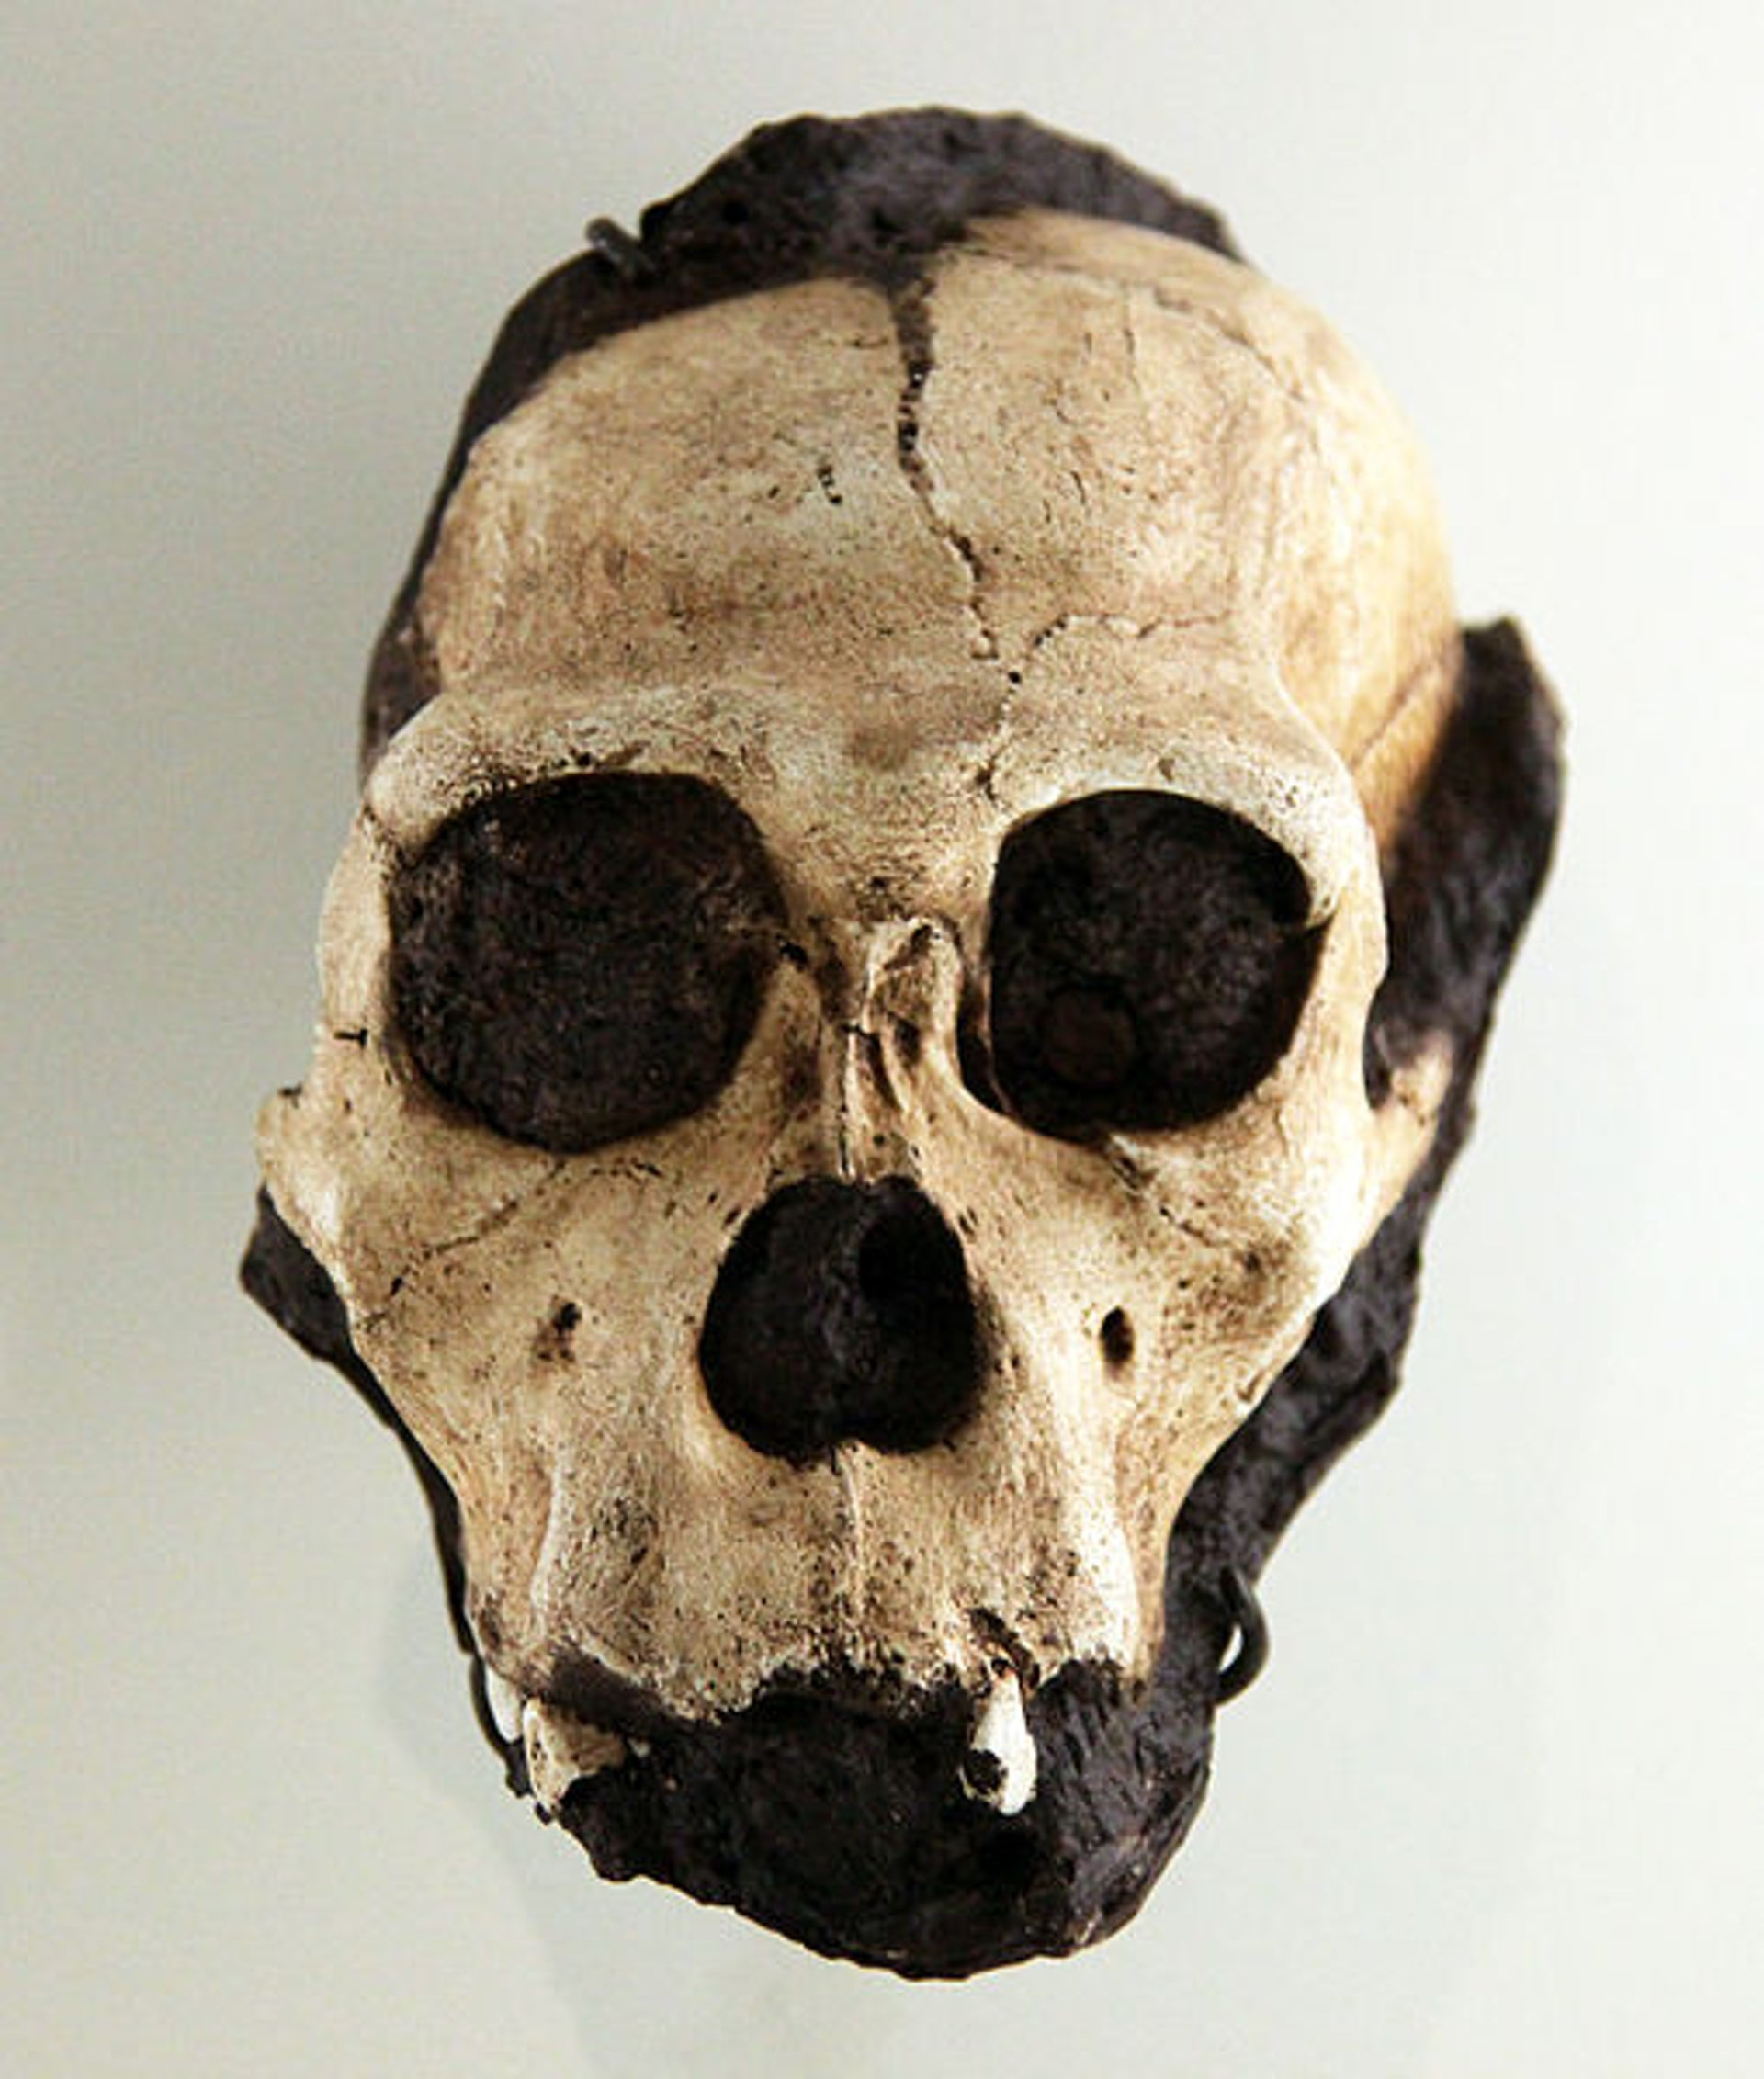 Australopithecus sediba juvenile male skull at the Smithsonian Museum of Natural History